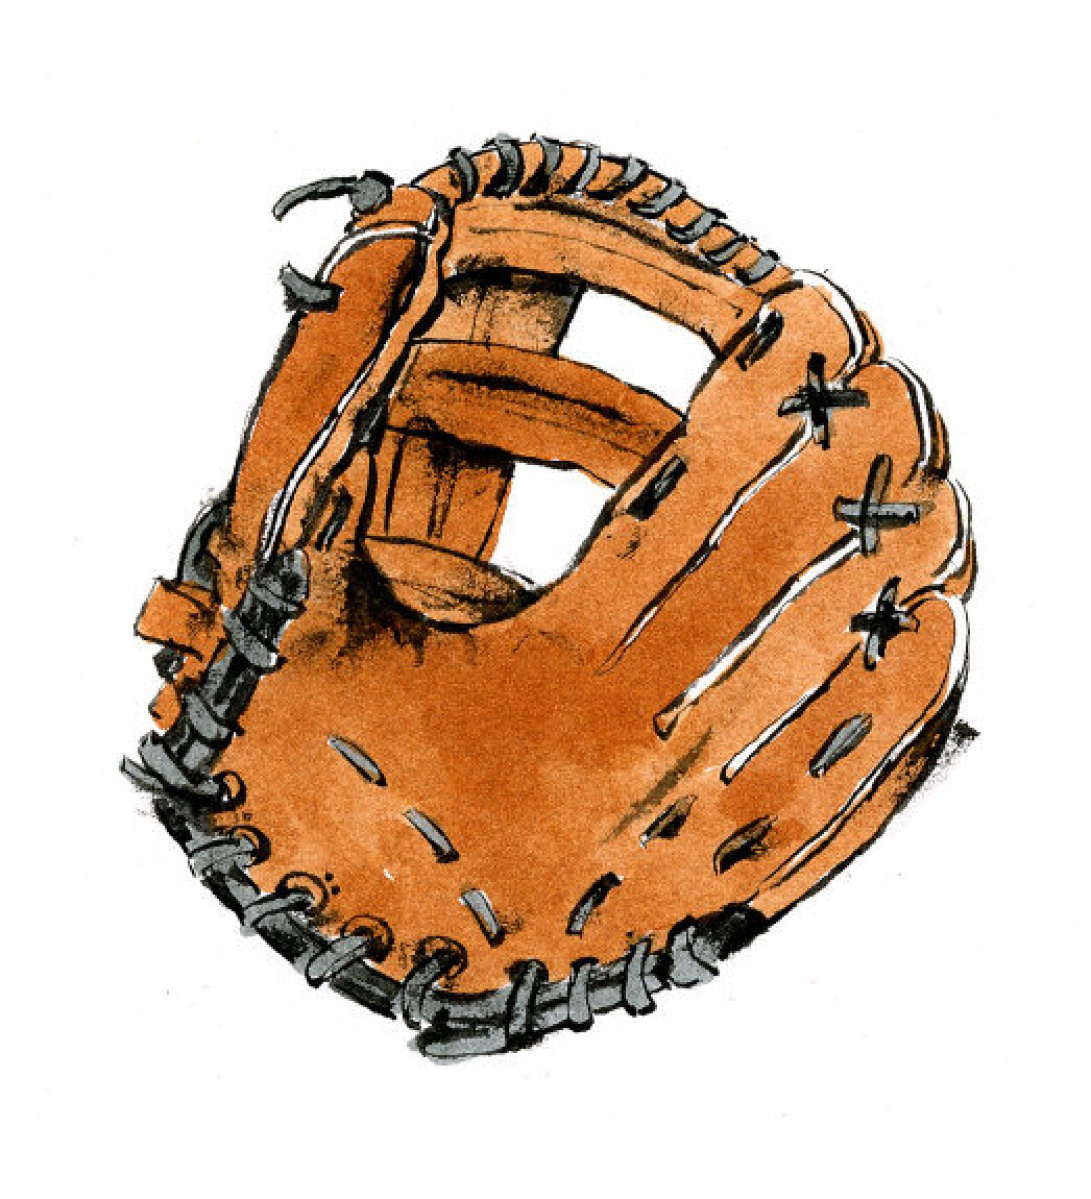 Cartoon baseball glove free download clip art